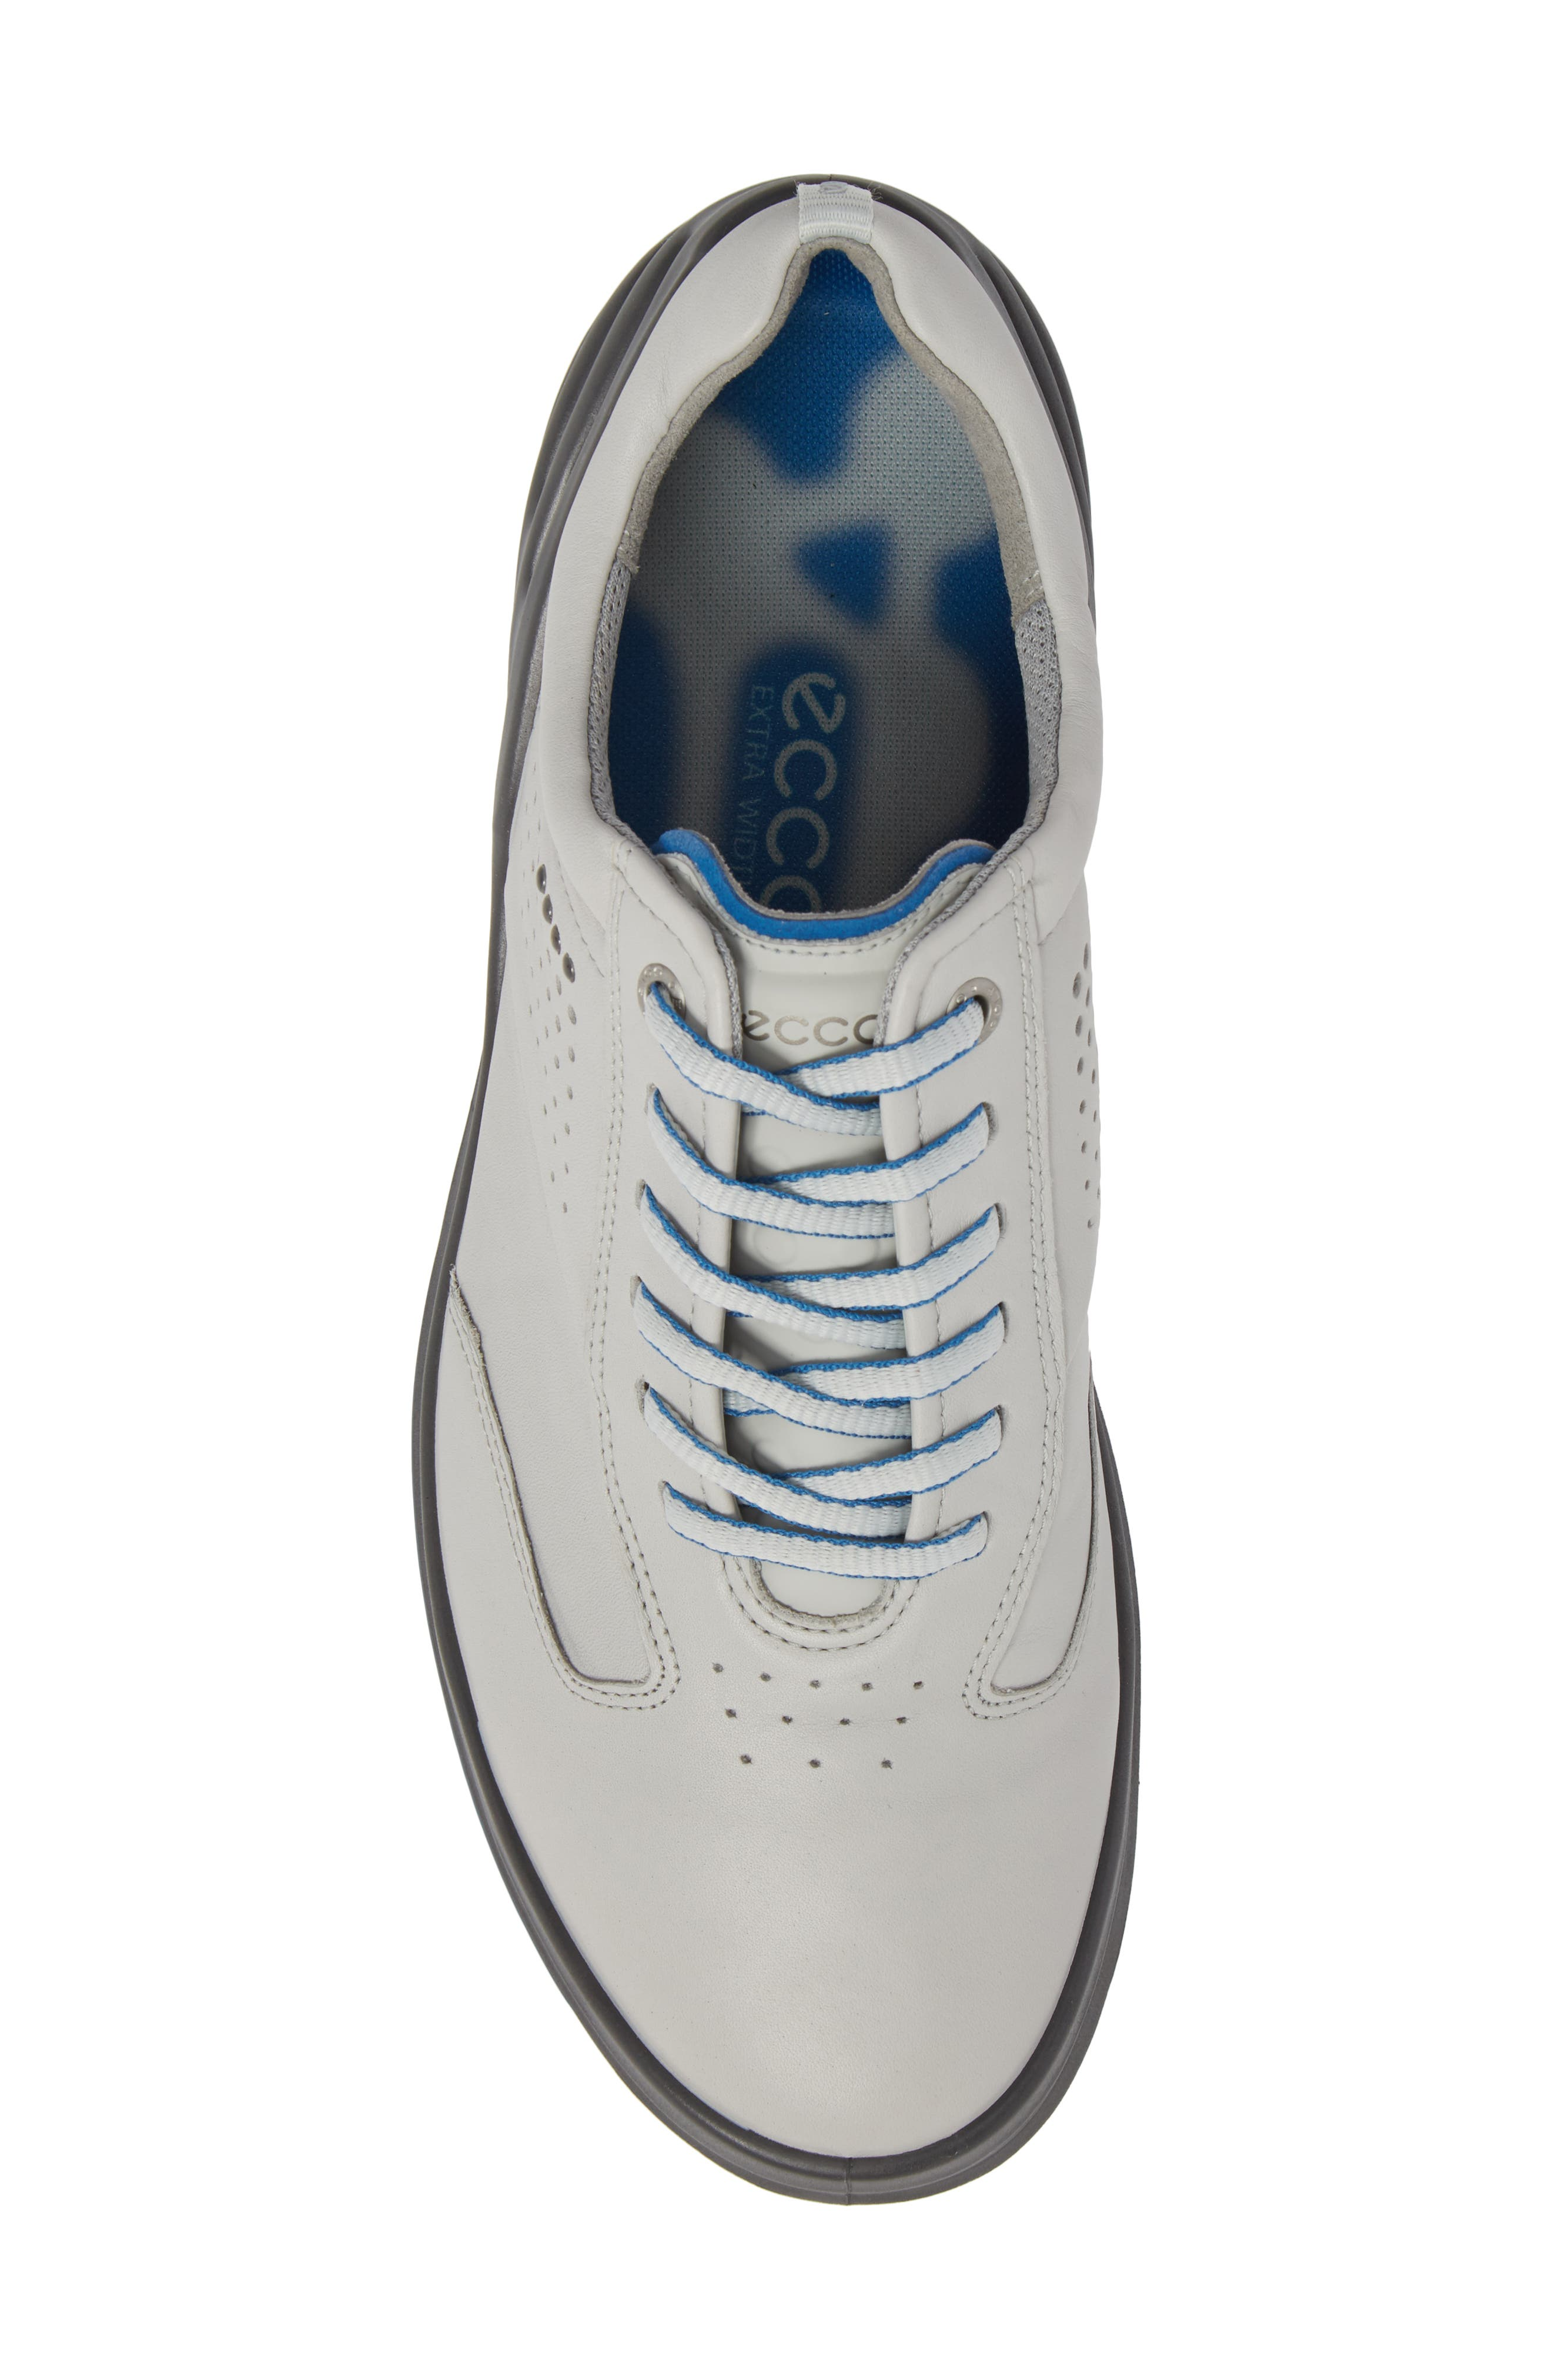 Cage Pro Golf Shoe,                             Alternate thumbnail 5, color,                             CONCRETE/ BERMUDA BLUE LEATHER